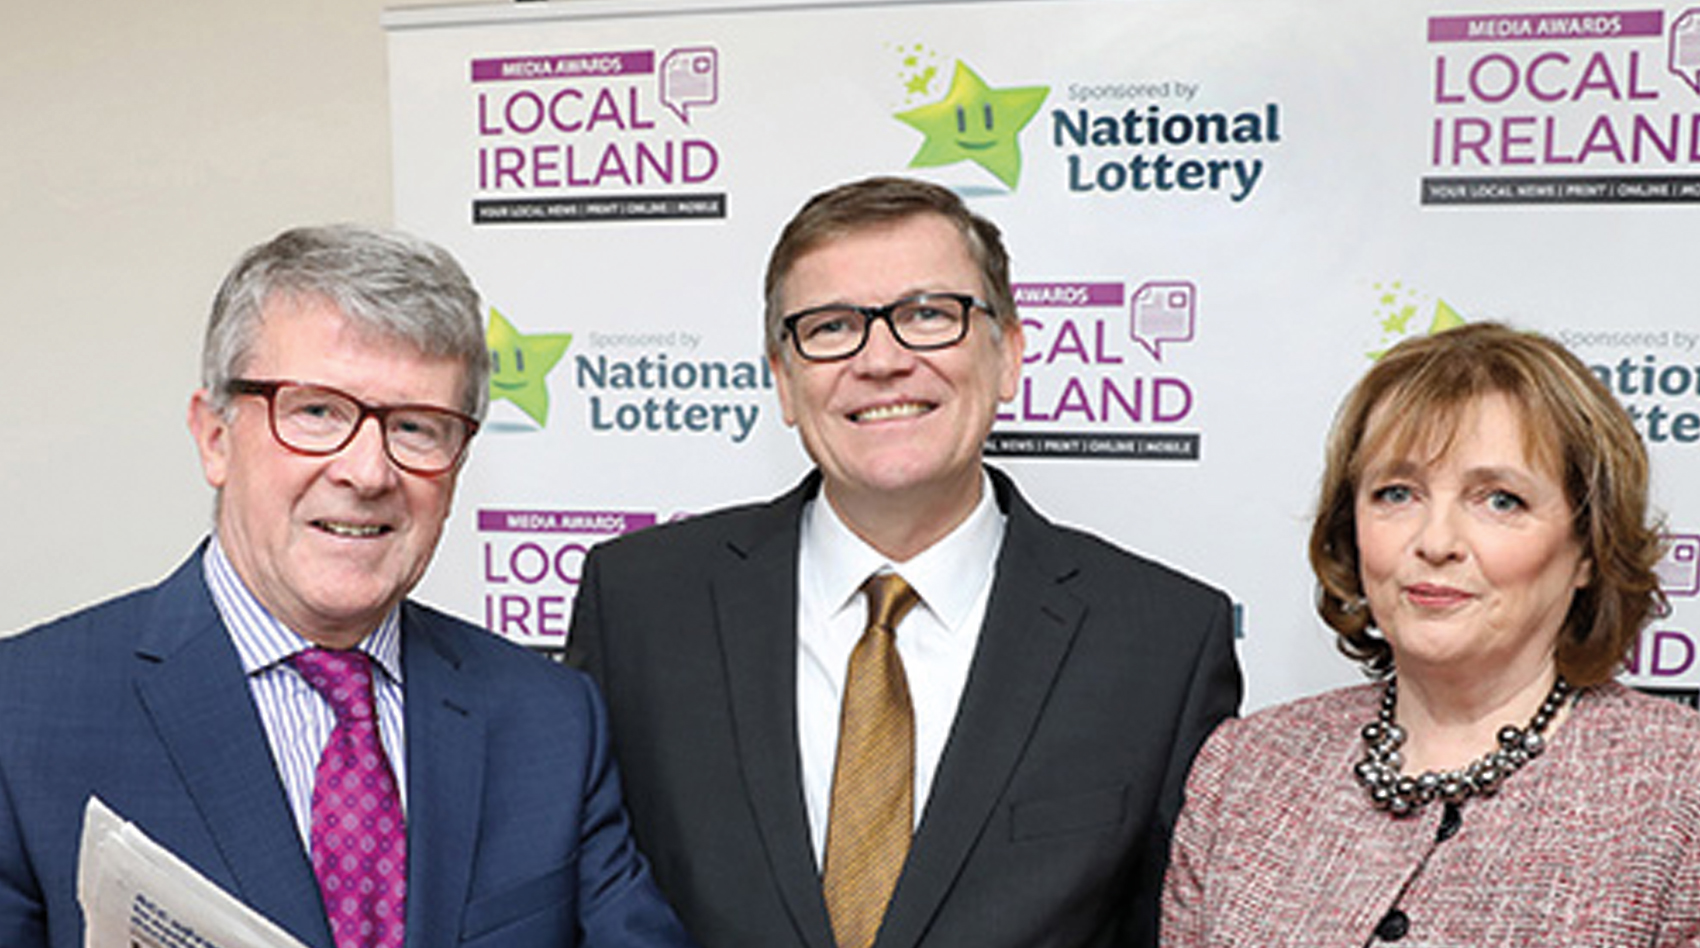 National Lottery announces sponsorship of Local Ireland Media Awards for 2019/2020